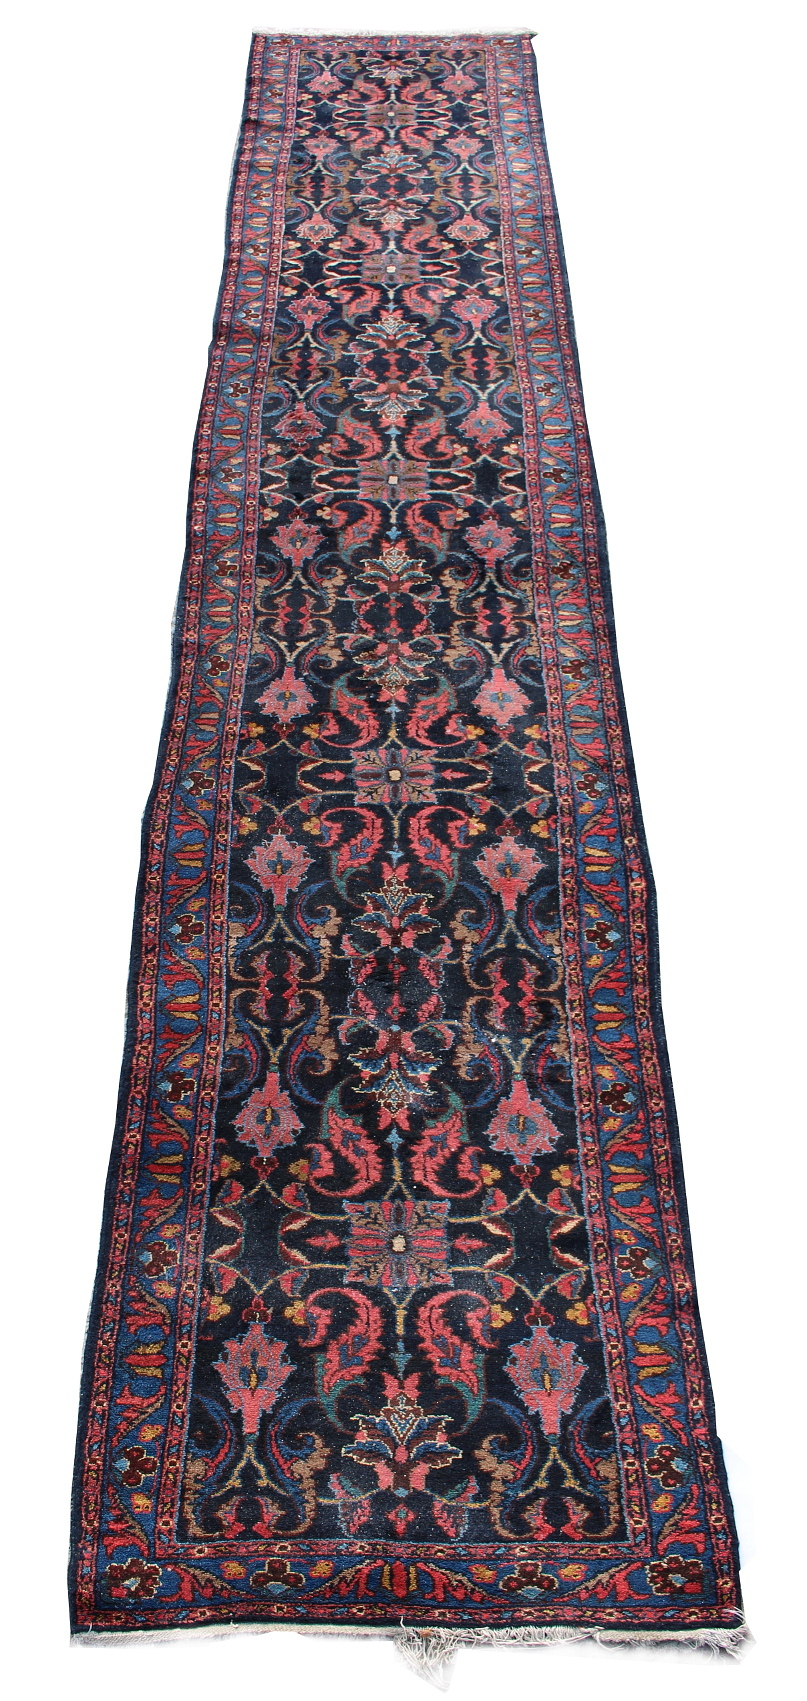 Lot 21 - Property of a lady - a Hamadan runner, mid 20th century, with dark navy ground, 213 by 39ins. (541